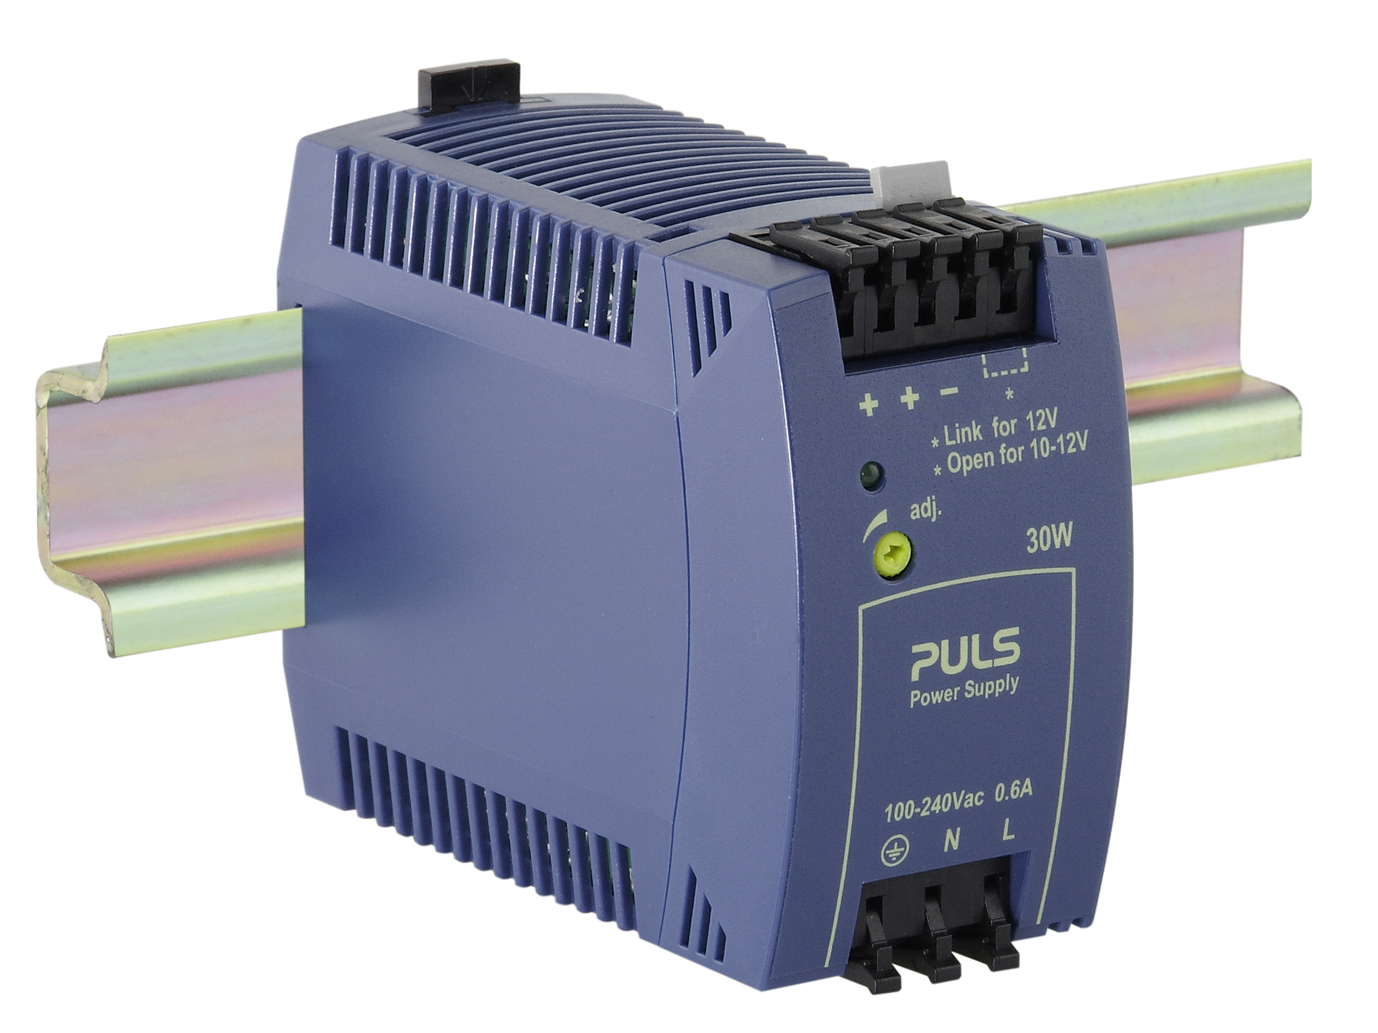 ML30 102 - DIN-rail power supplies for 1-phase systems | PULS